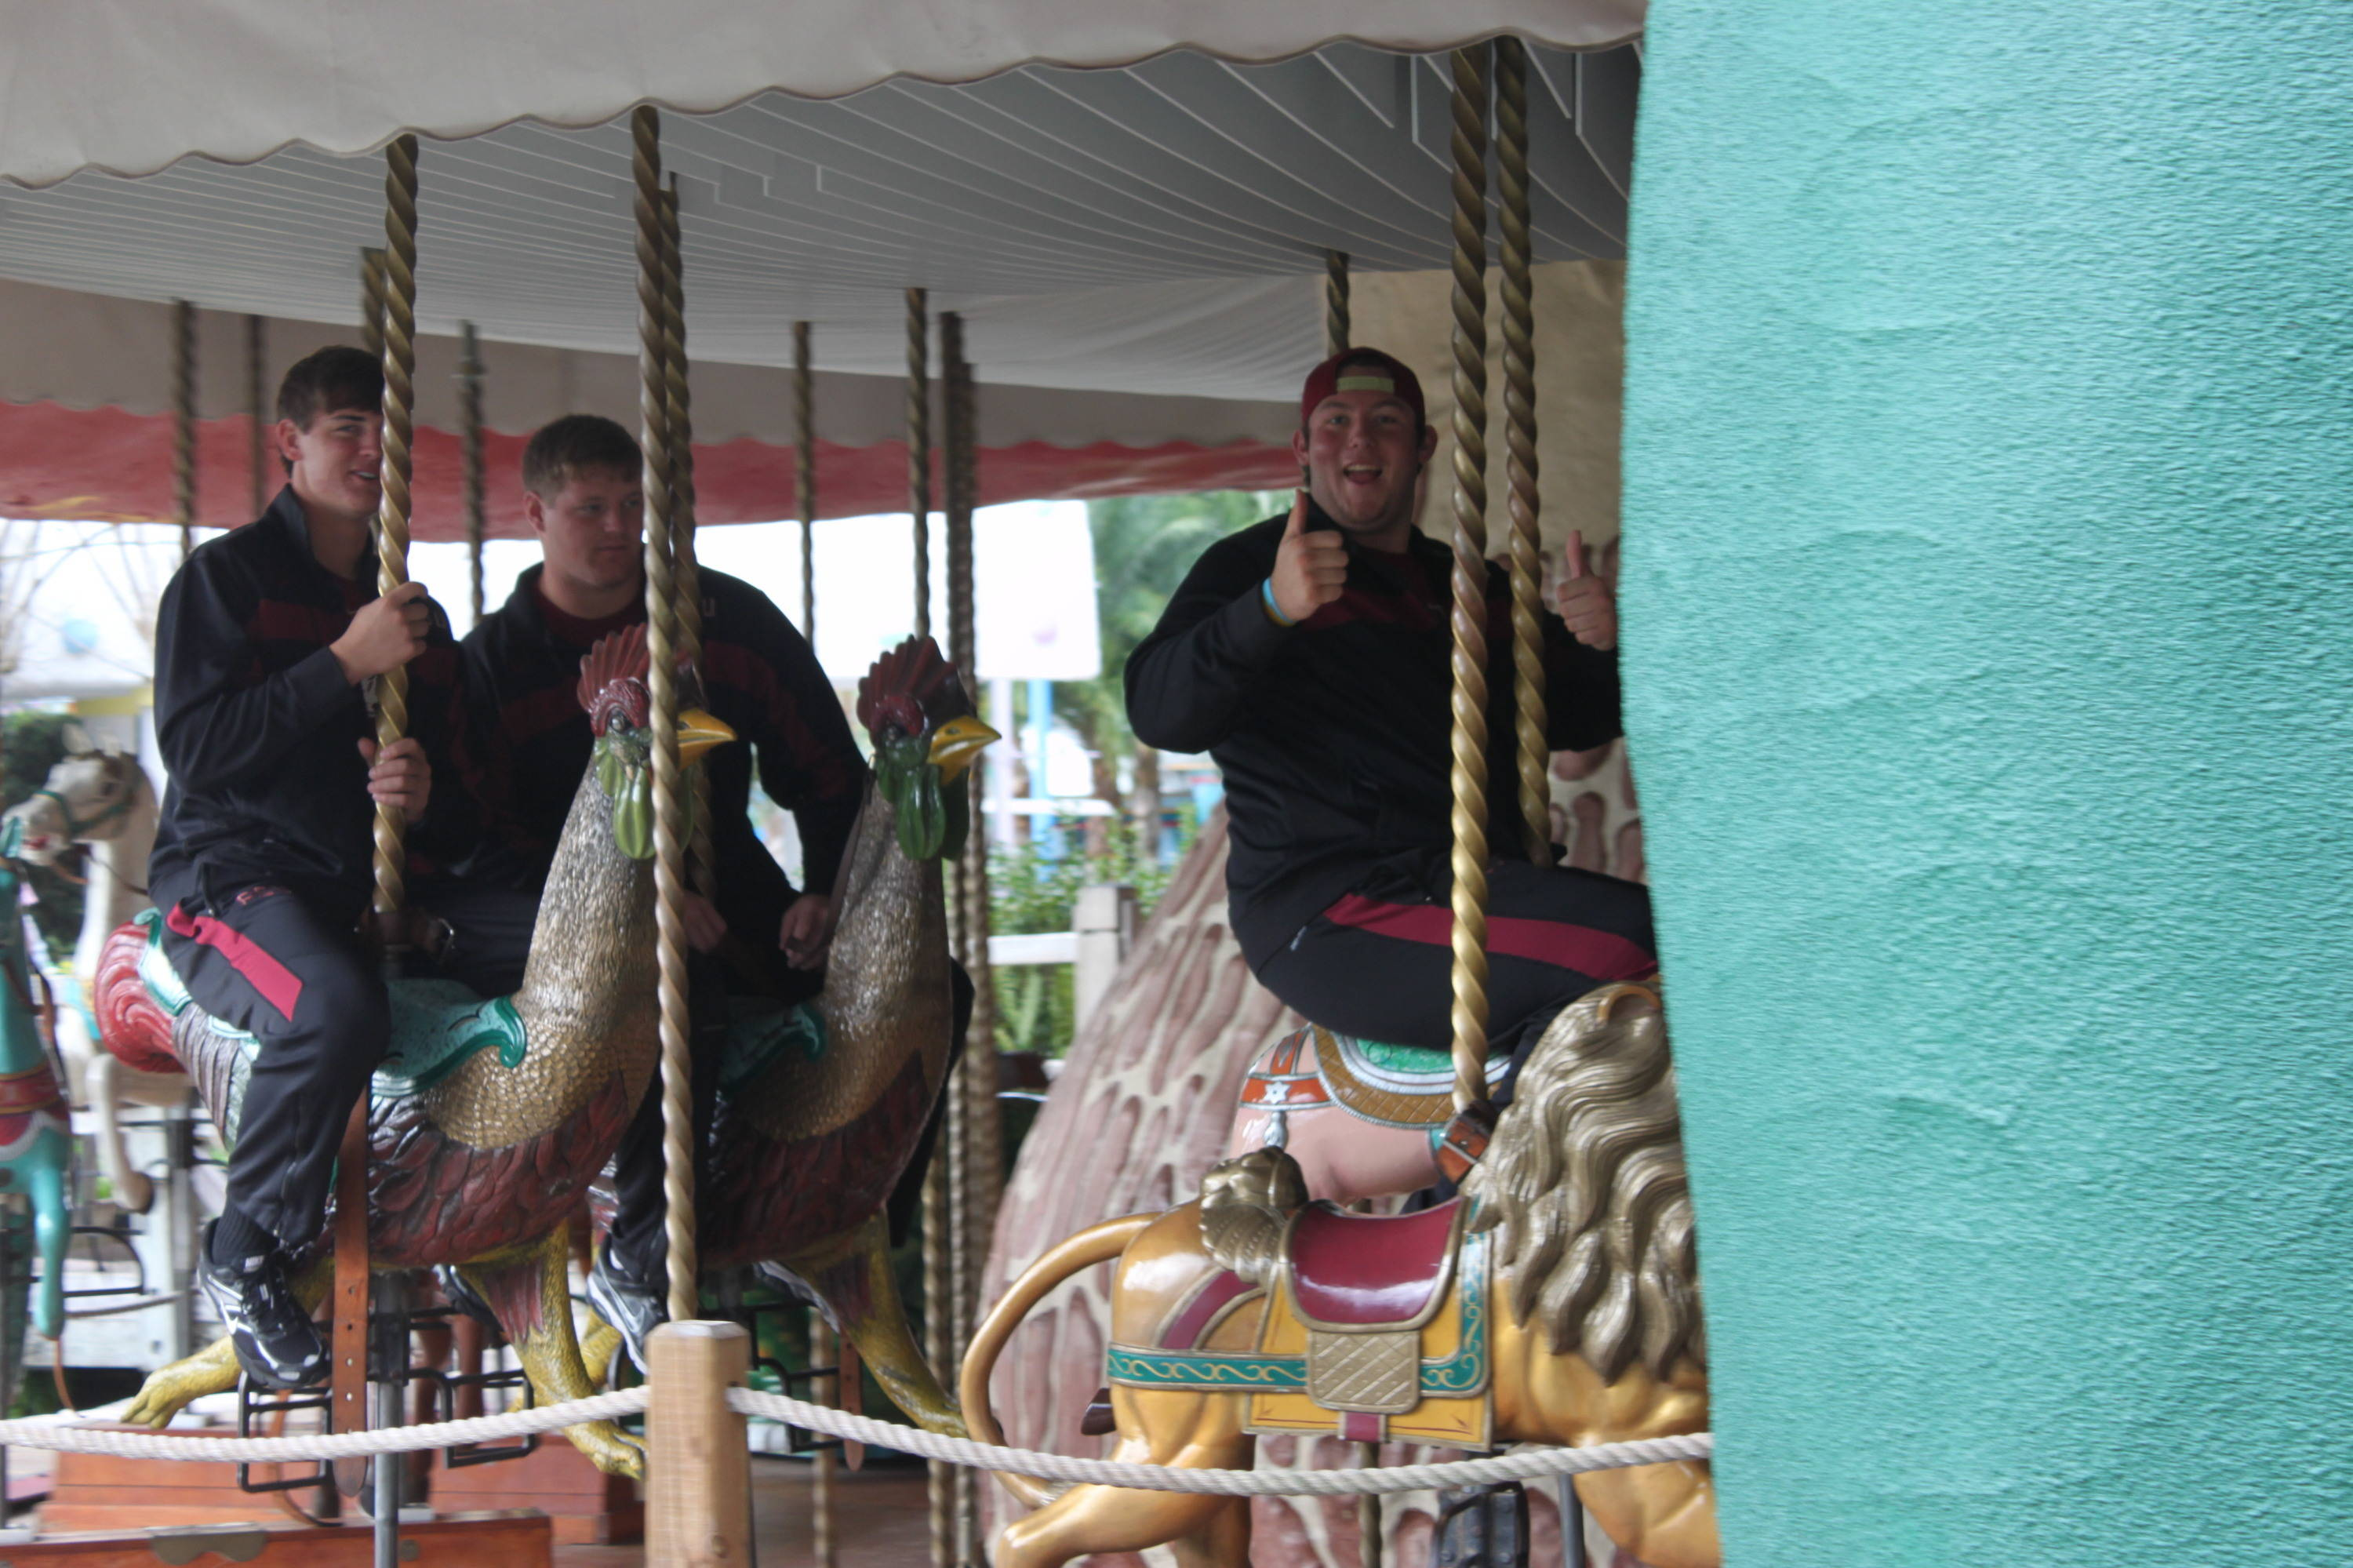 The big kids seemed to like the carousel ride at Give Kids the World Village, too.